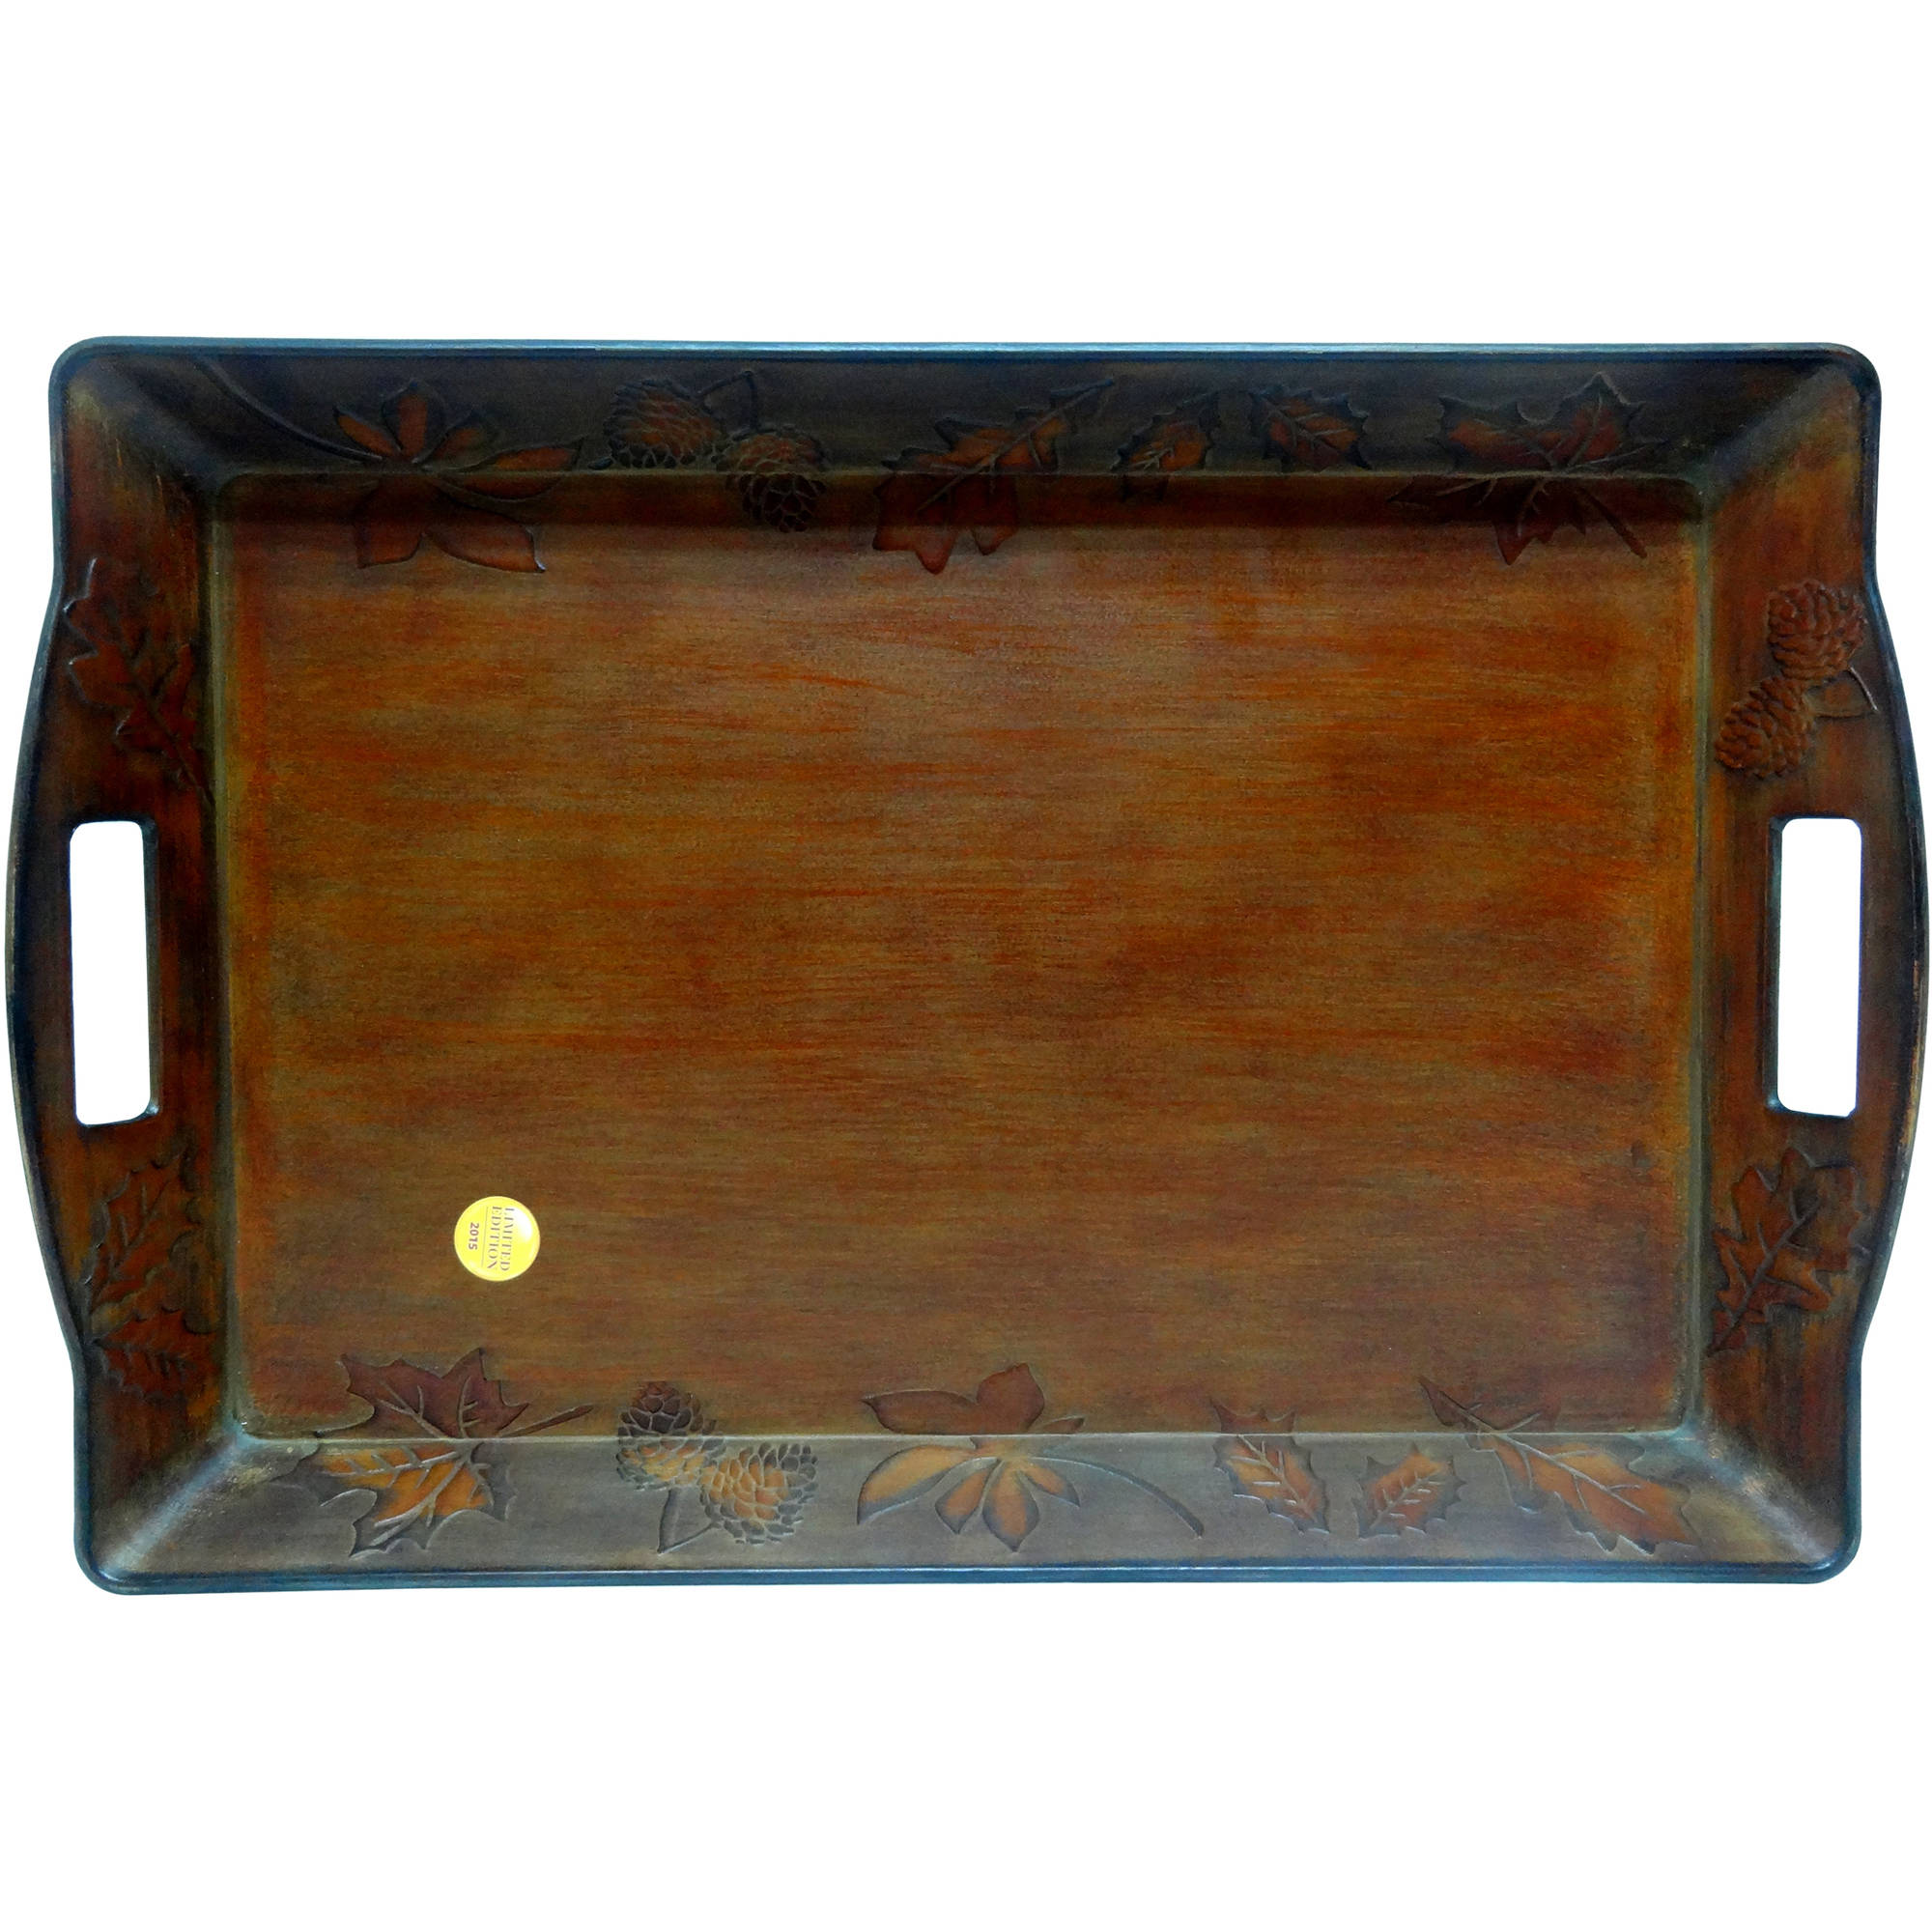 Better Homes And Garden Tray, Maple Icon Antique Copper, Set Of 2